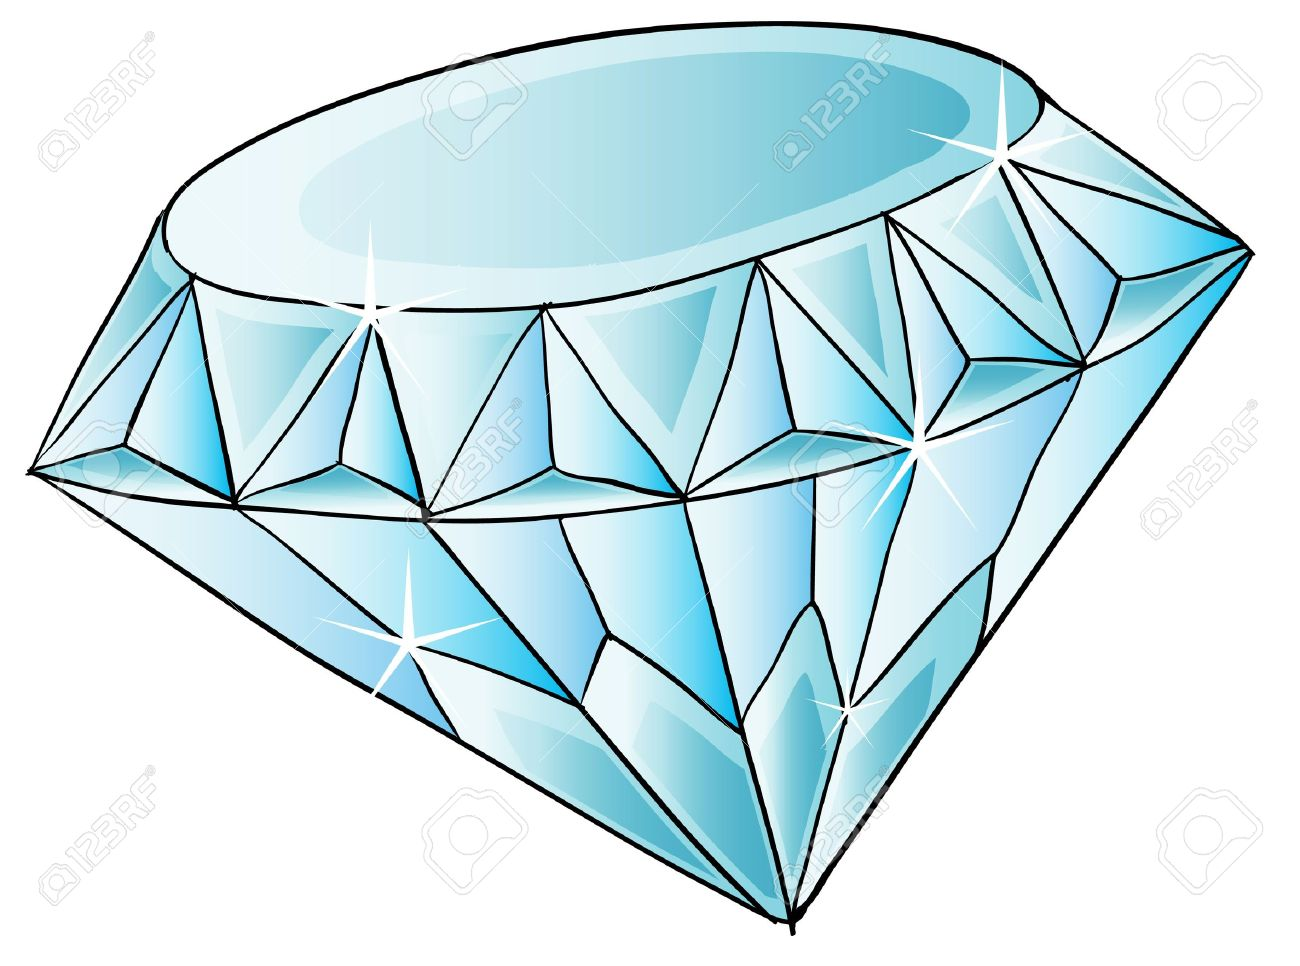 Diamond at getdrawings com. Diamonds clipart